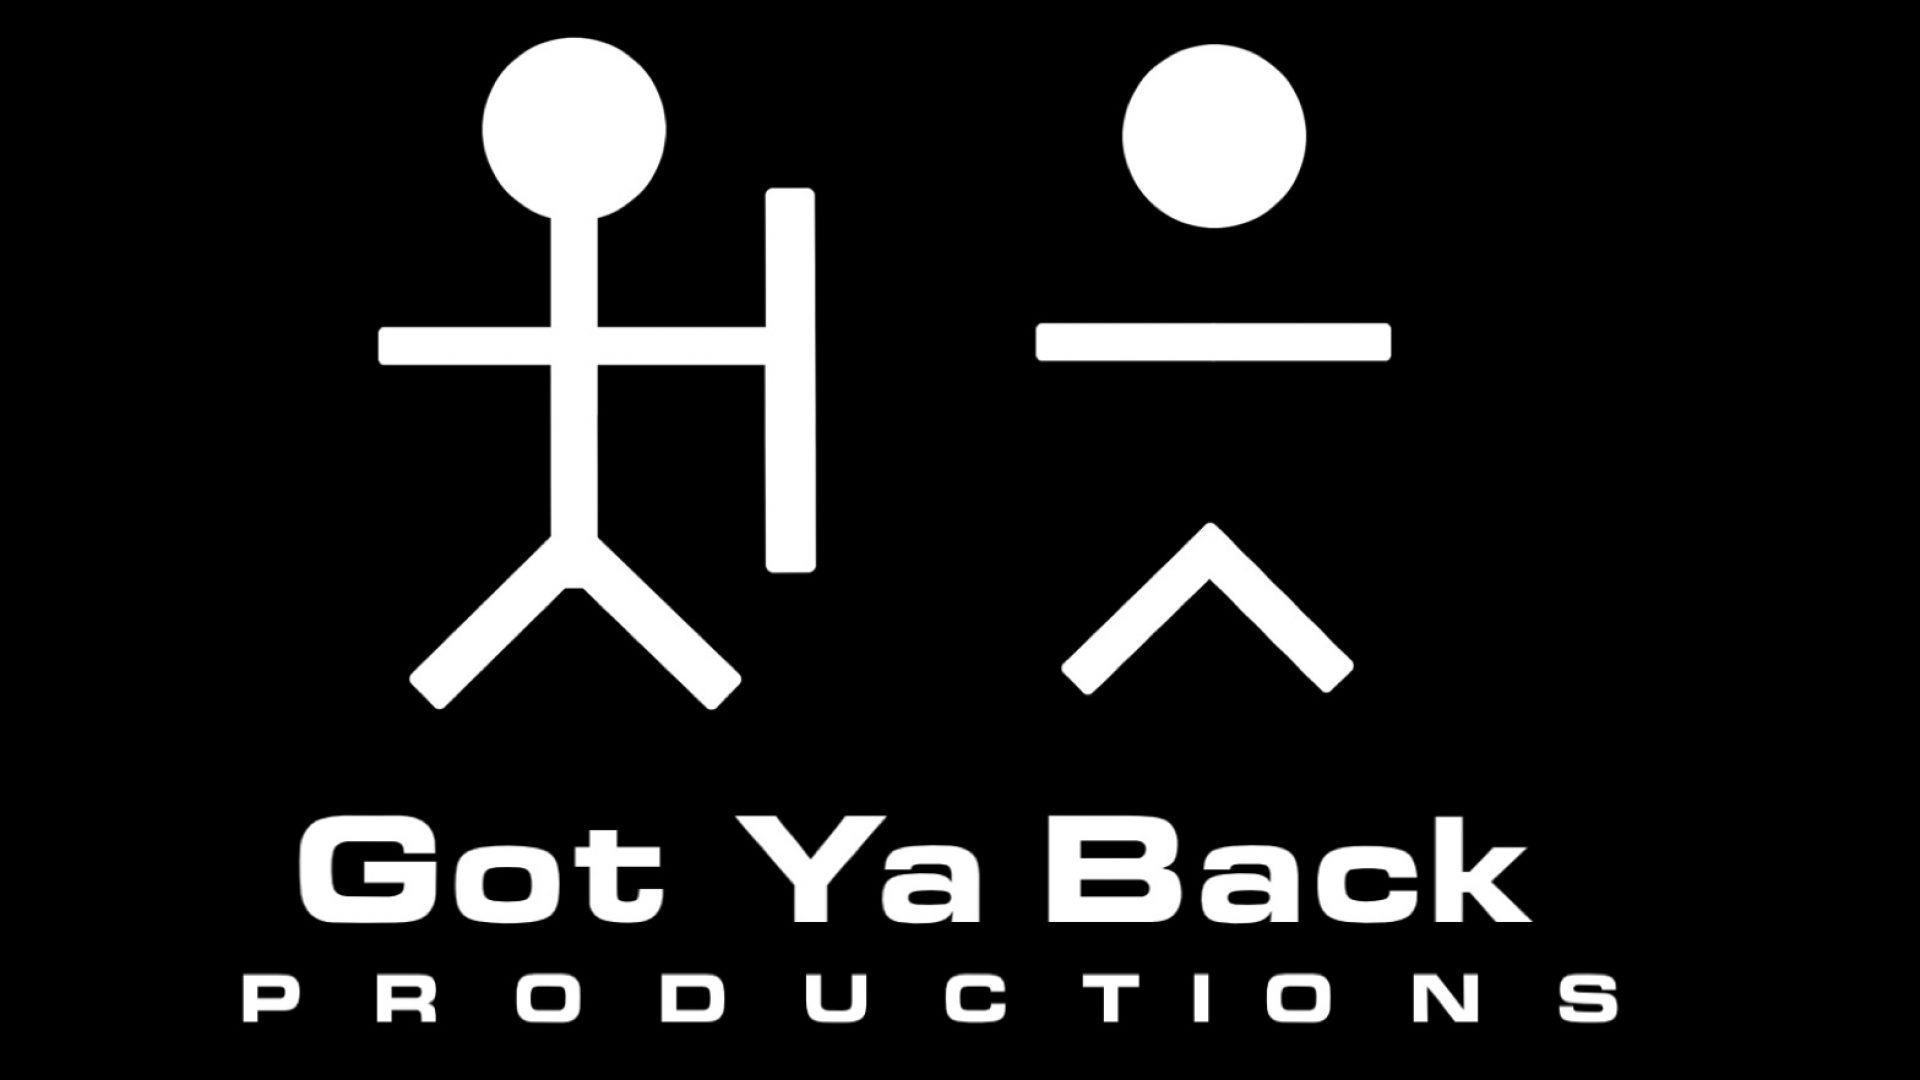 Got Ya Back Productions